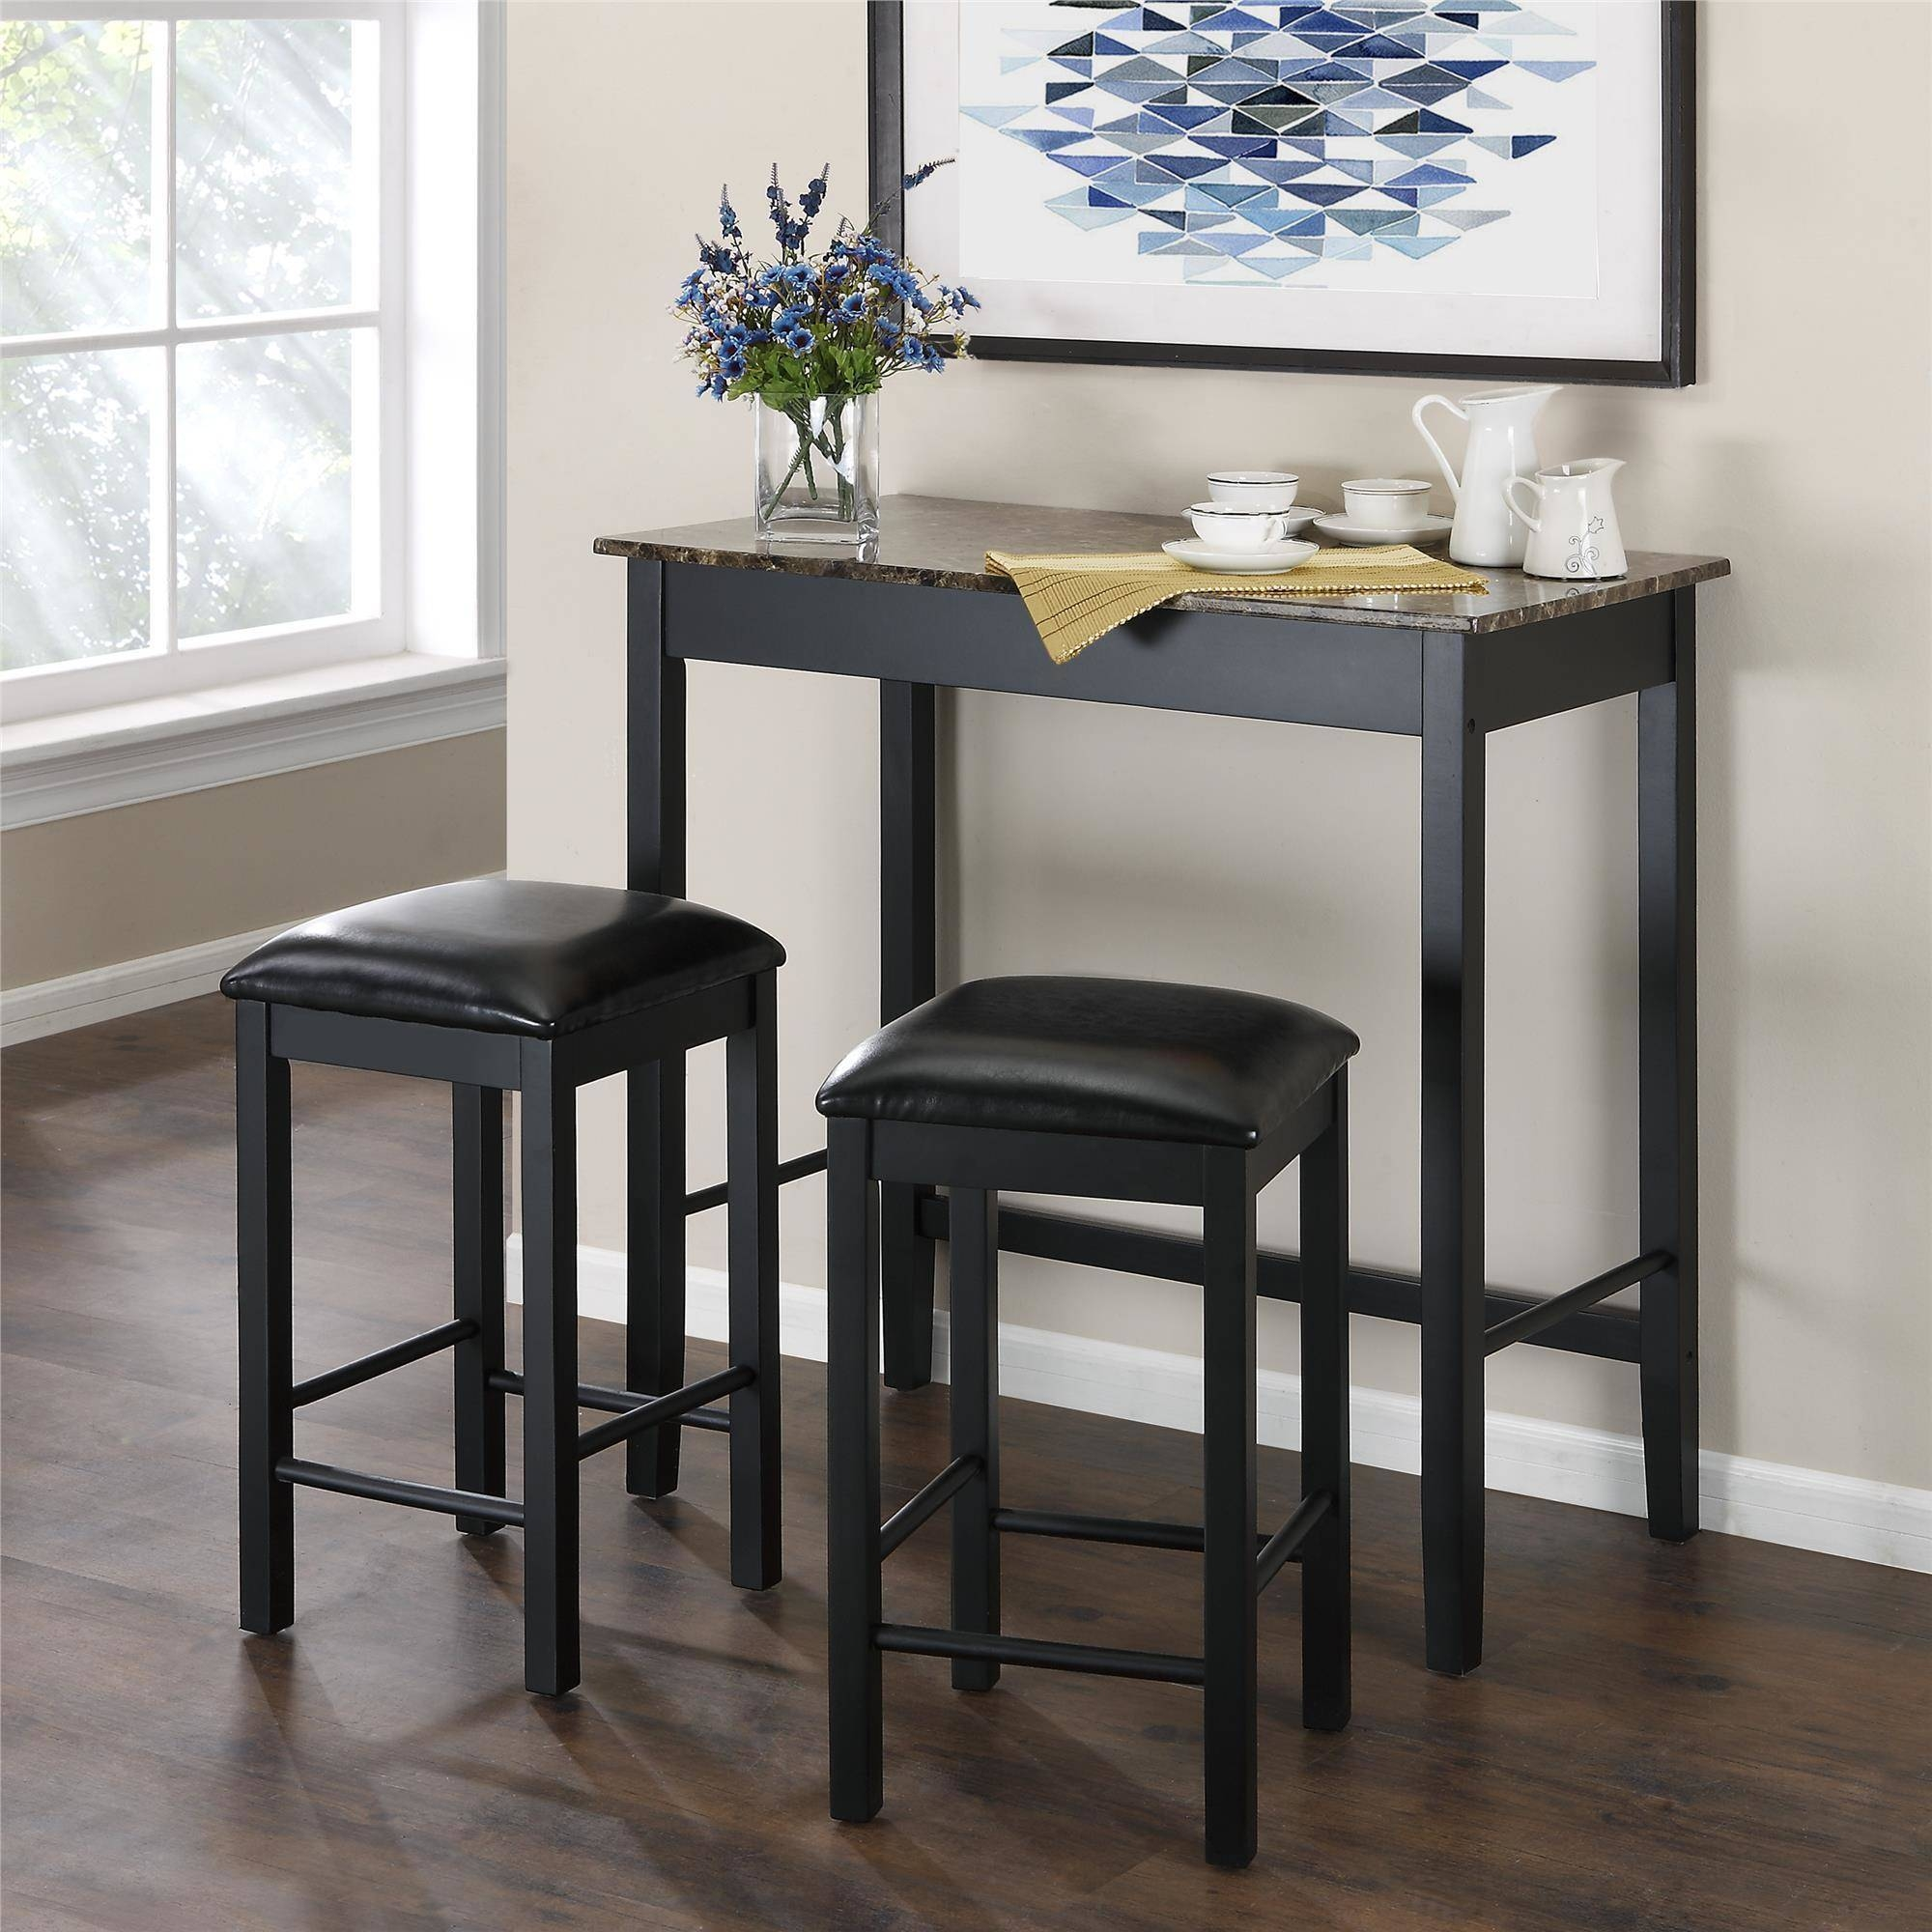 Kitchen & Dining Furniture - Walmart within Sofa Table With Chairs (Image 19 of 30)